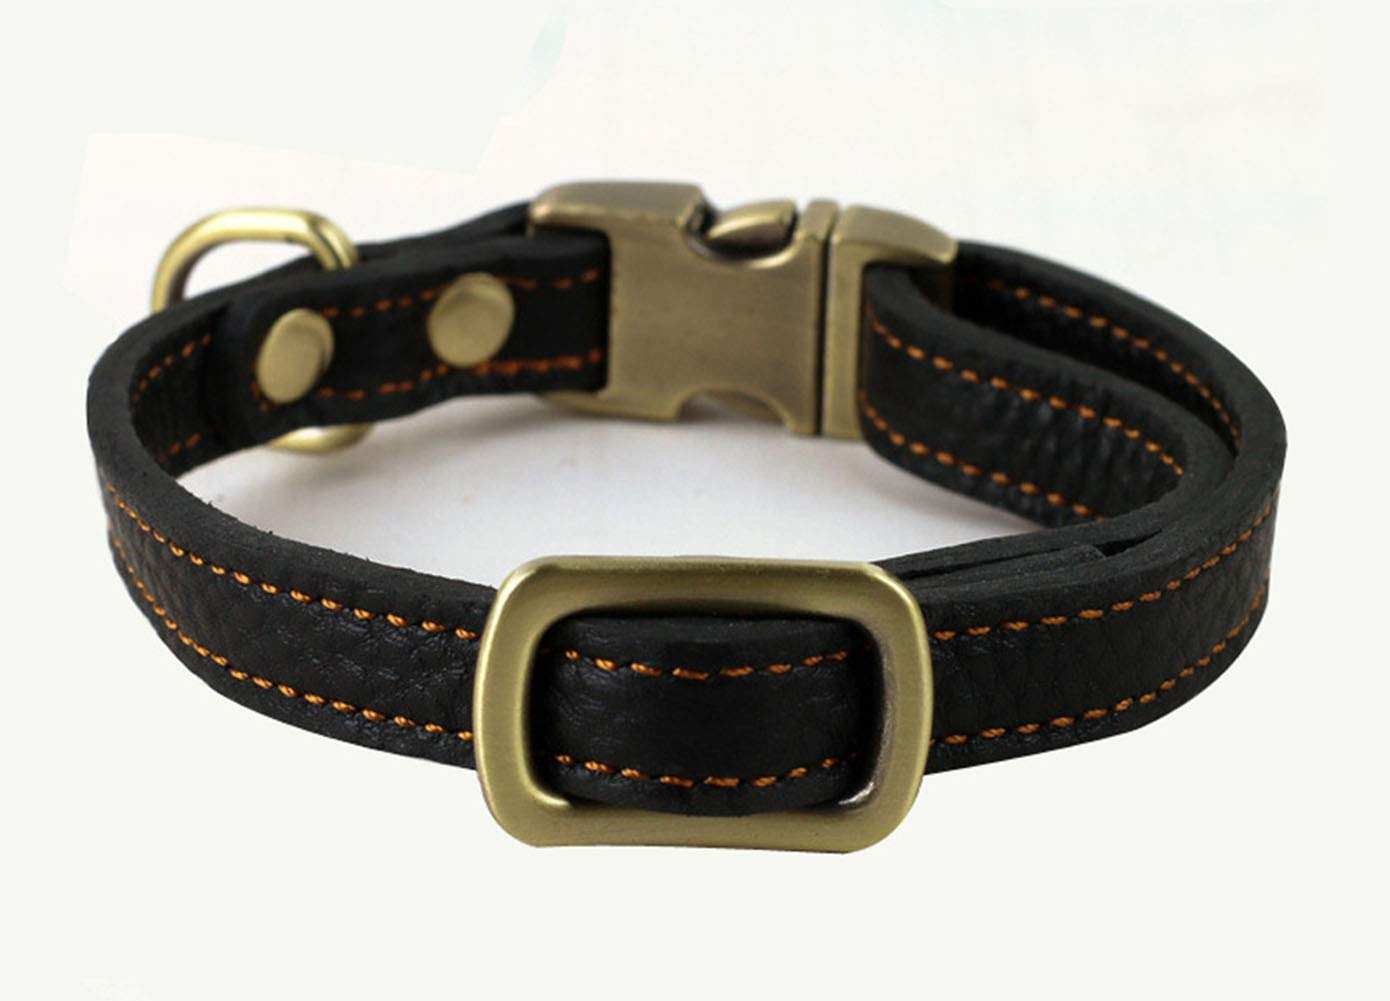 Black Large Black Large Pet Collar for Dogs Medium Large Heavy Duty Leather Classical Training Walking Necklace Puppy,Black,L